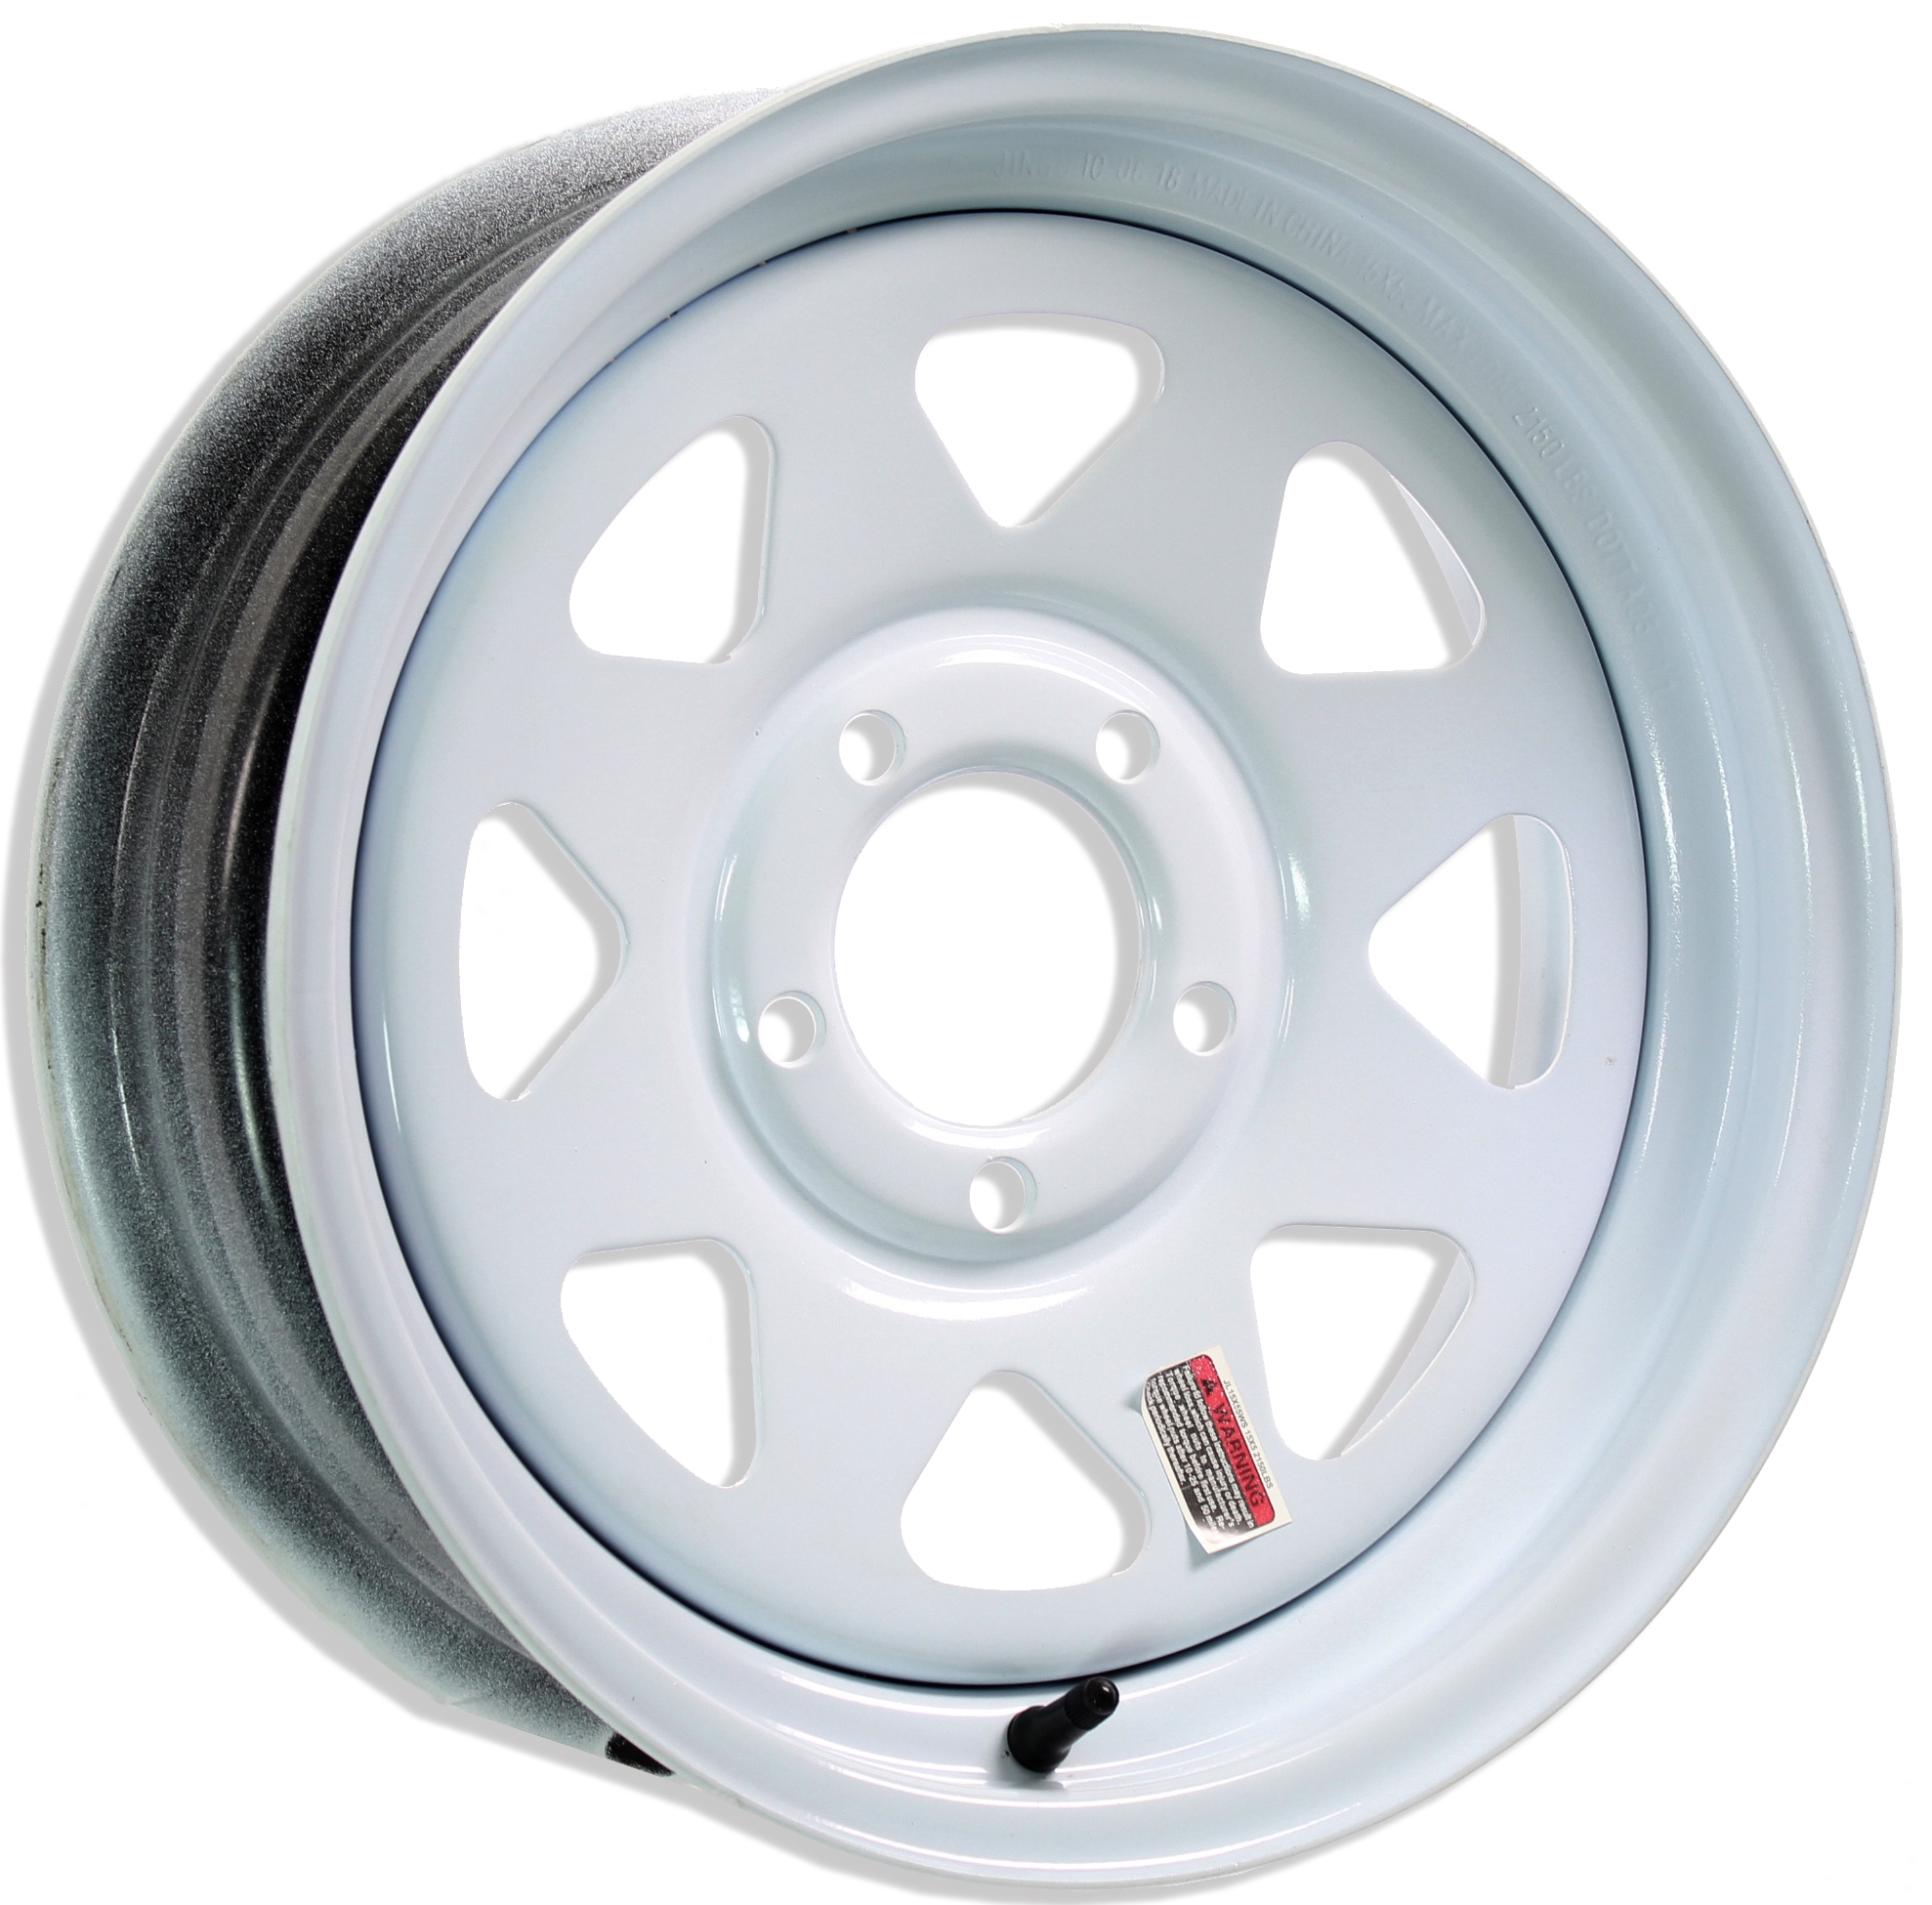 15x6 5-Lug White Spoke Steel Trailer Wheel Image